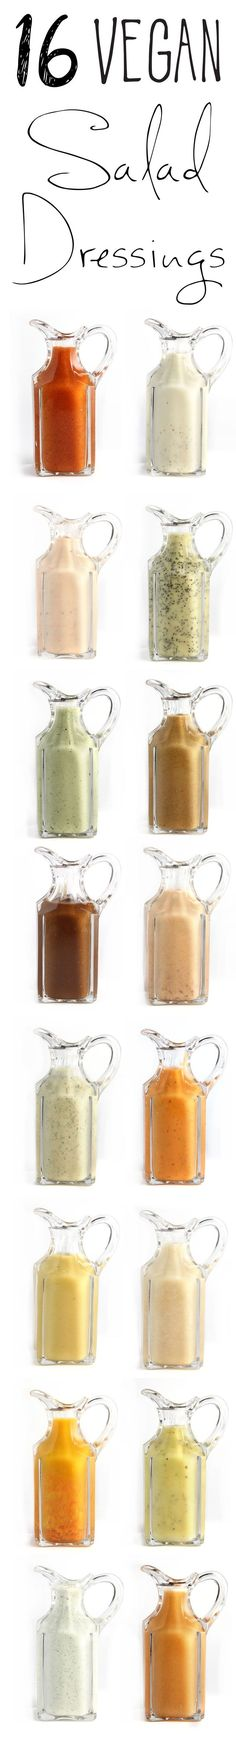 16 vegan salad dressing. (water recipes meals)